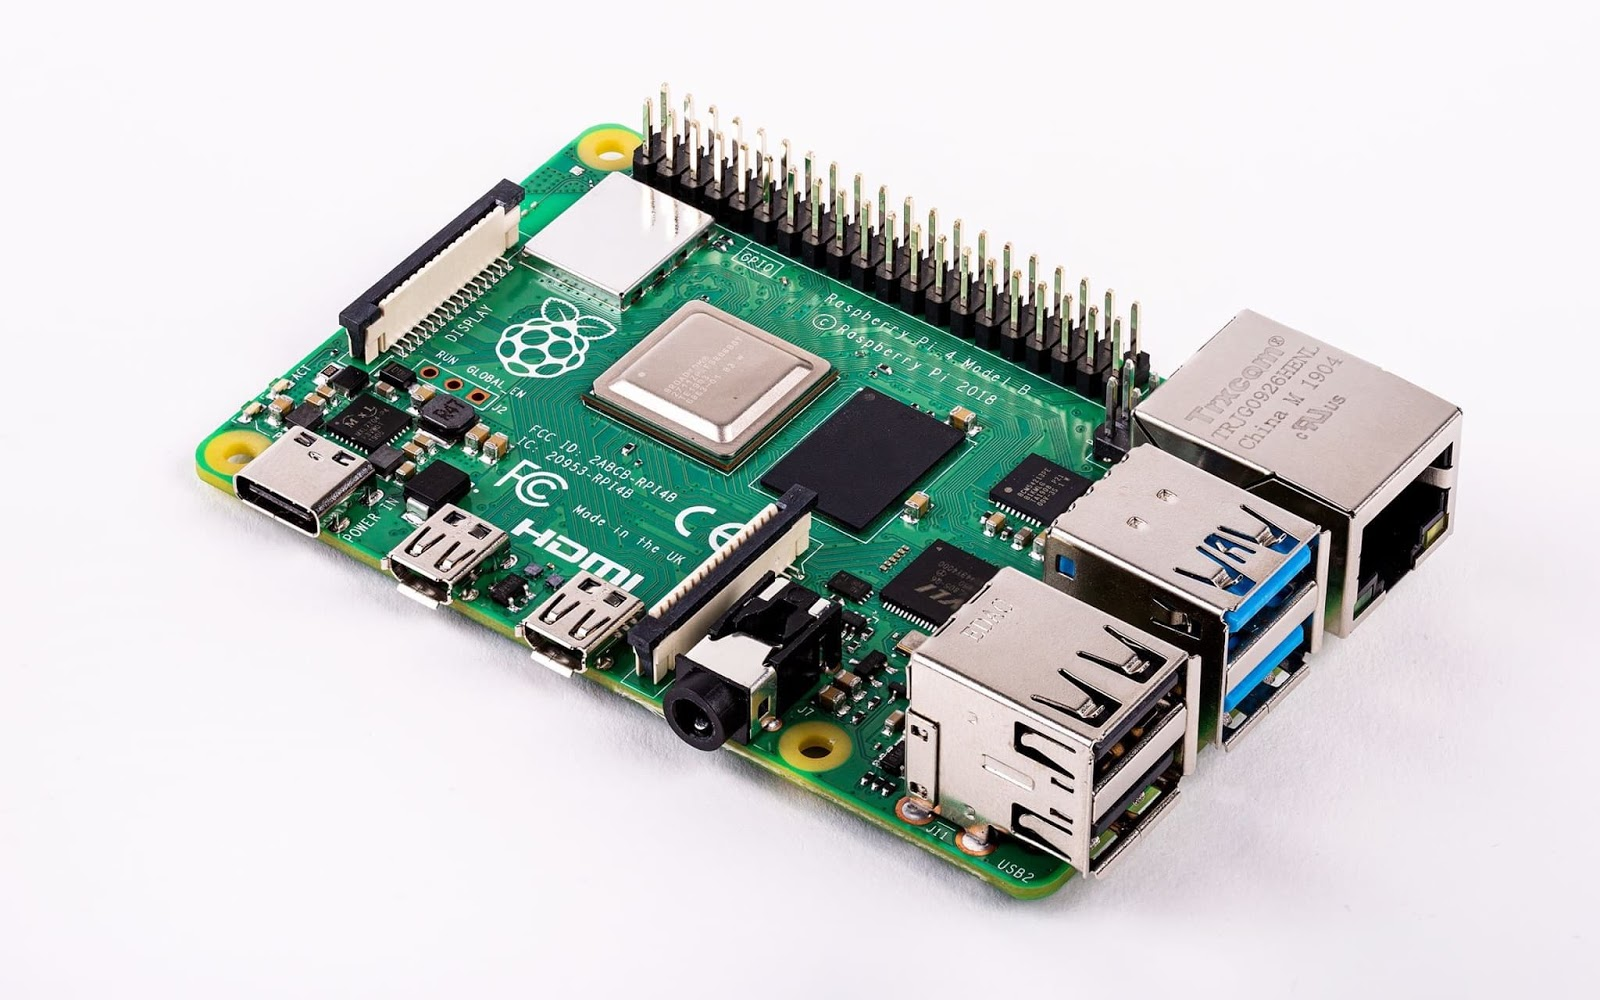 The New Raspberry Pi 4 B (Up to 4GB RAM, 2x HDMI 4K/60, 2x USB3 0